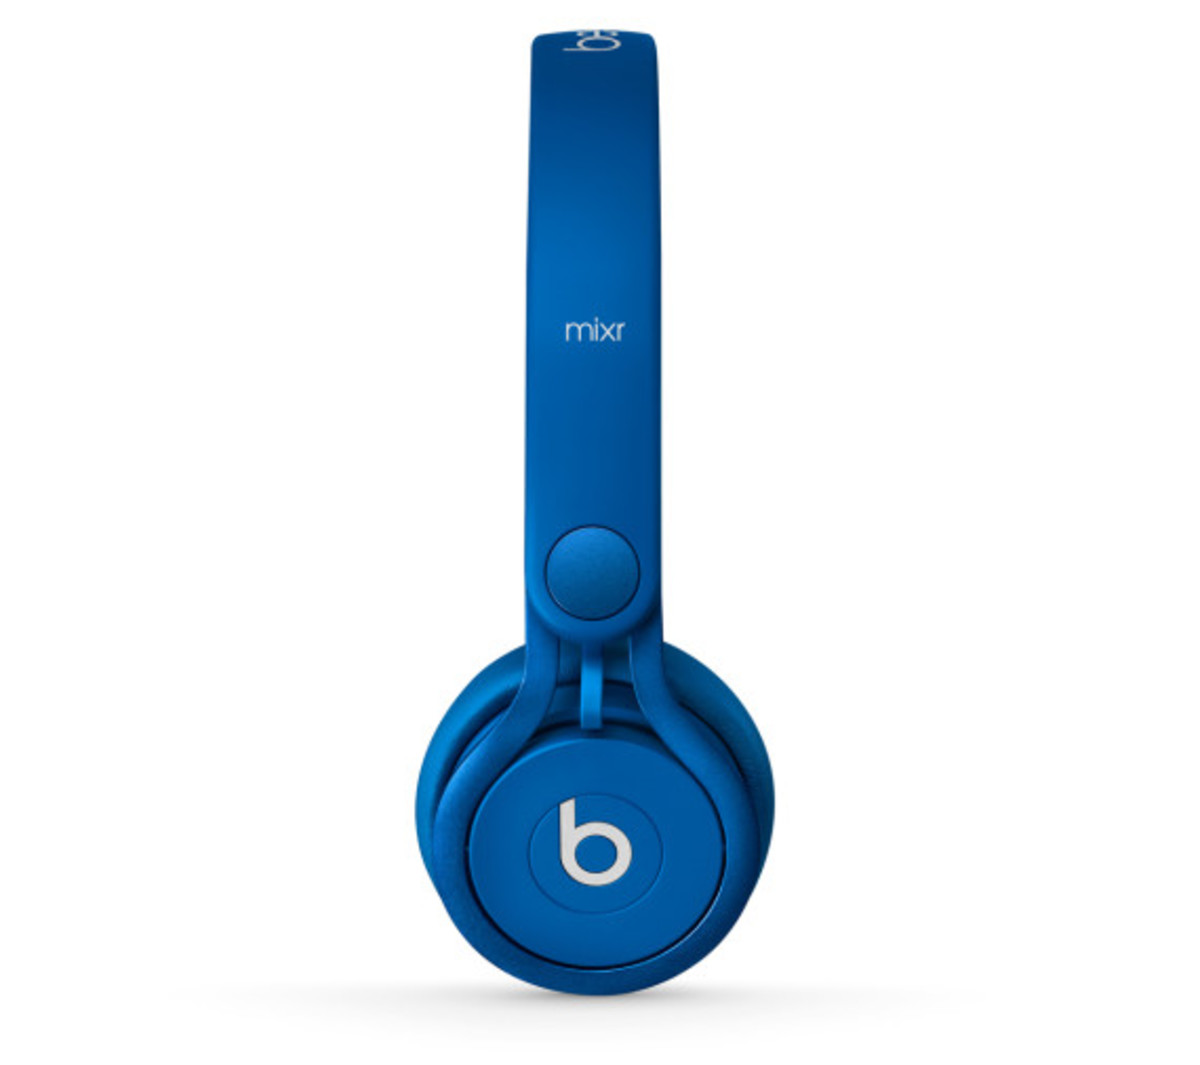 beats-by-dre-mixr-headphones-new-summer-colors-06